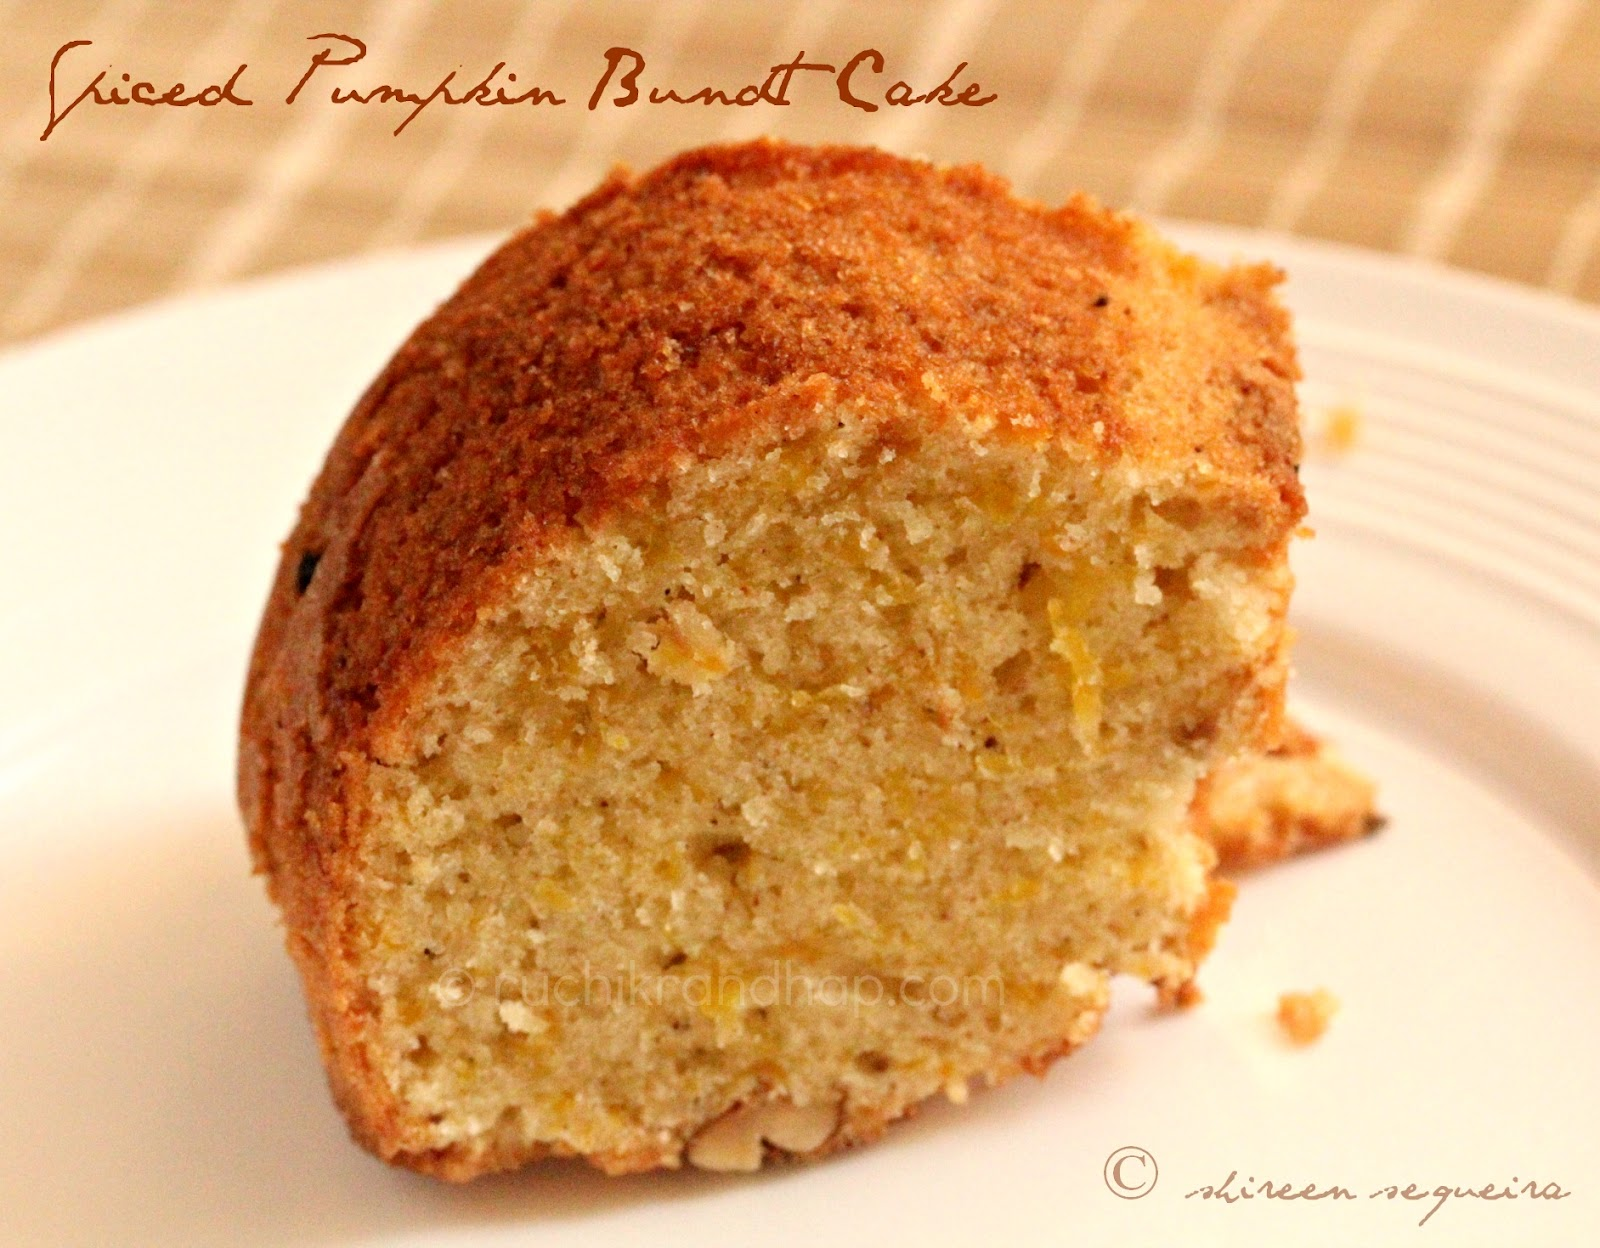 Ruchik Randhap (Delicious Cooking): Spiced Pumpkin Bundt Cake